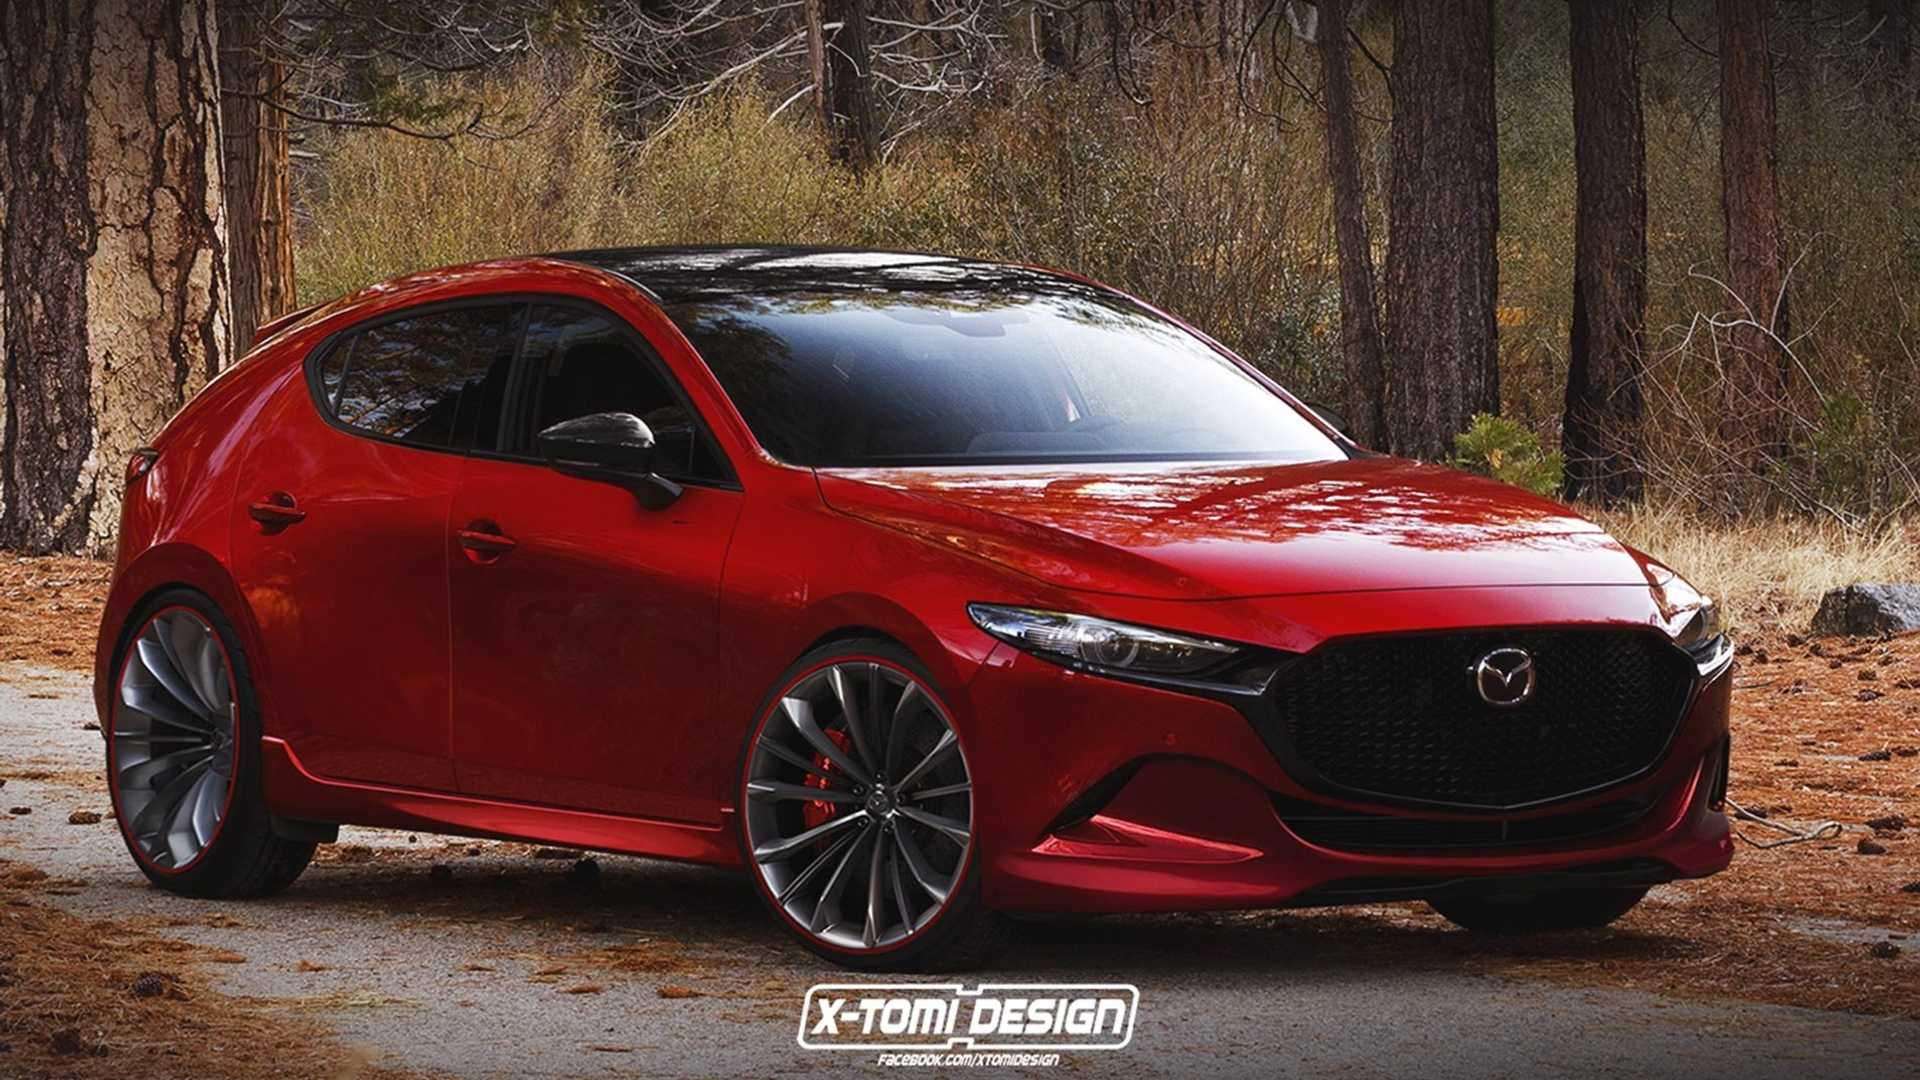 22 Great Mazdaspeed 2019 Style with Mazdaspeed 2019